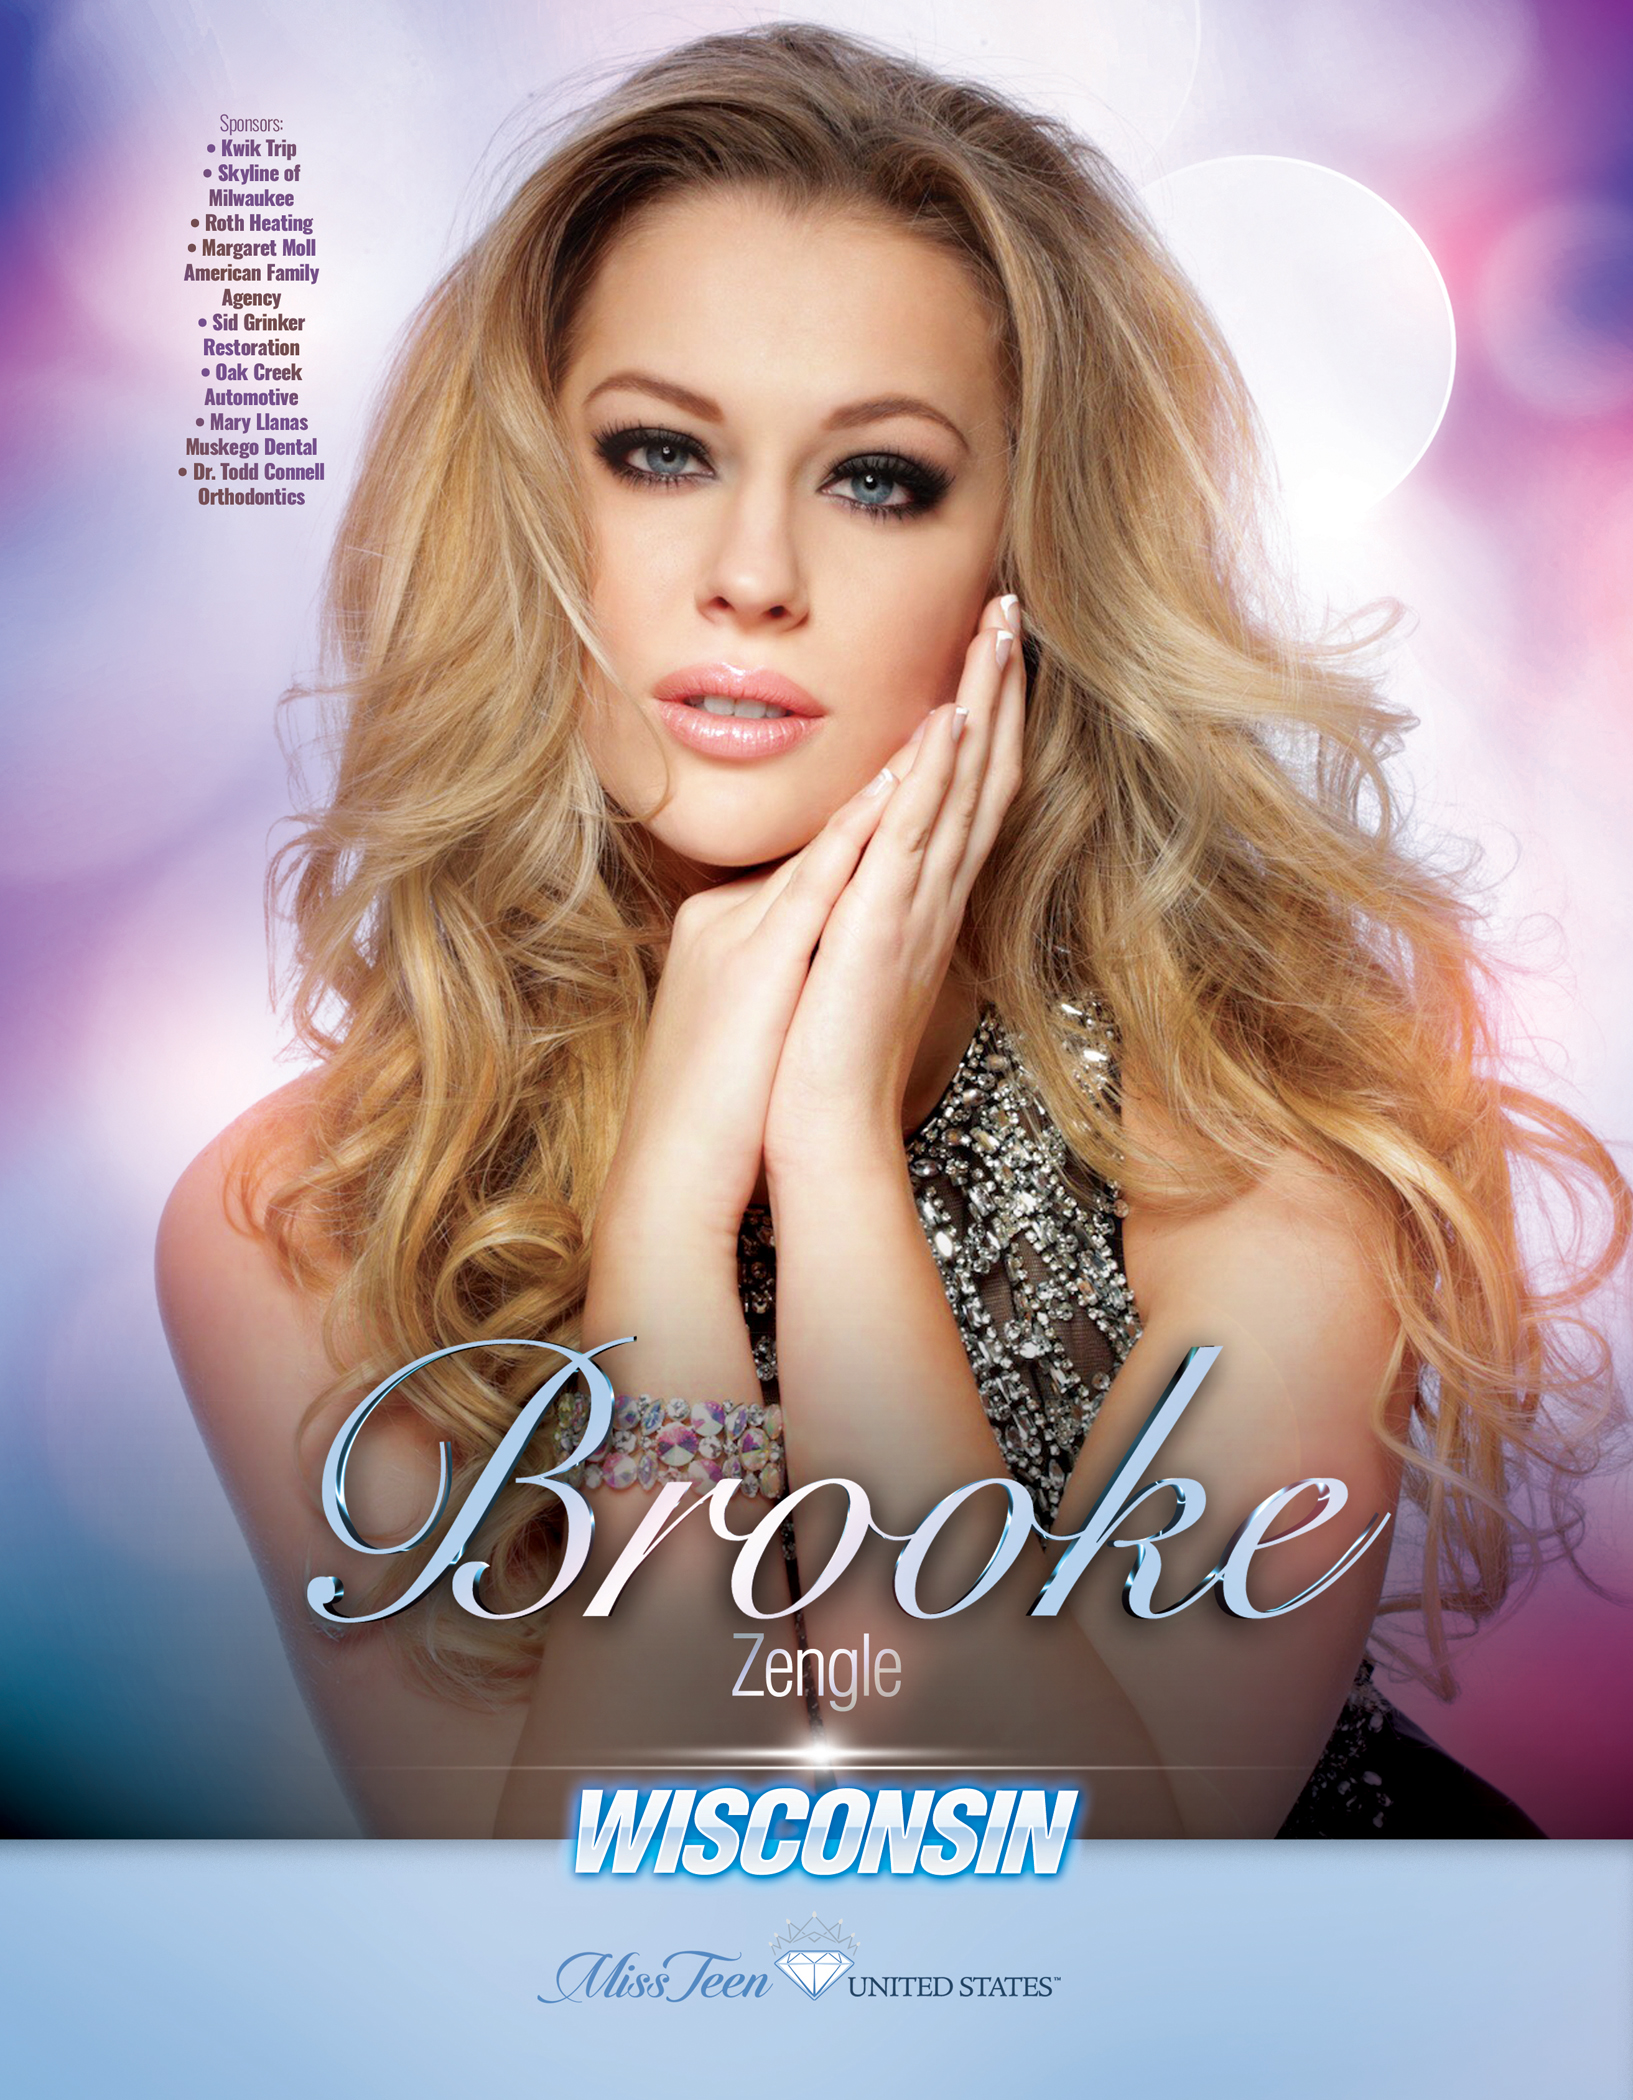 Brooke Zengle Miss Teen Wisconsin United States - 2019